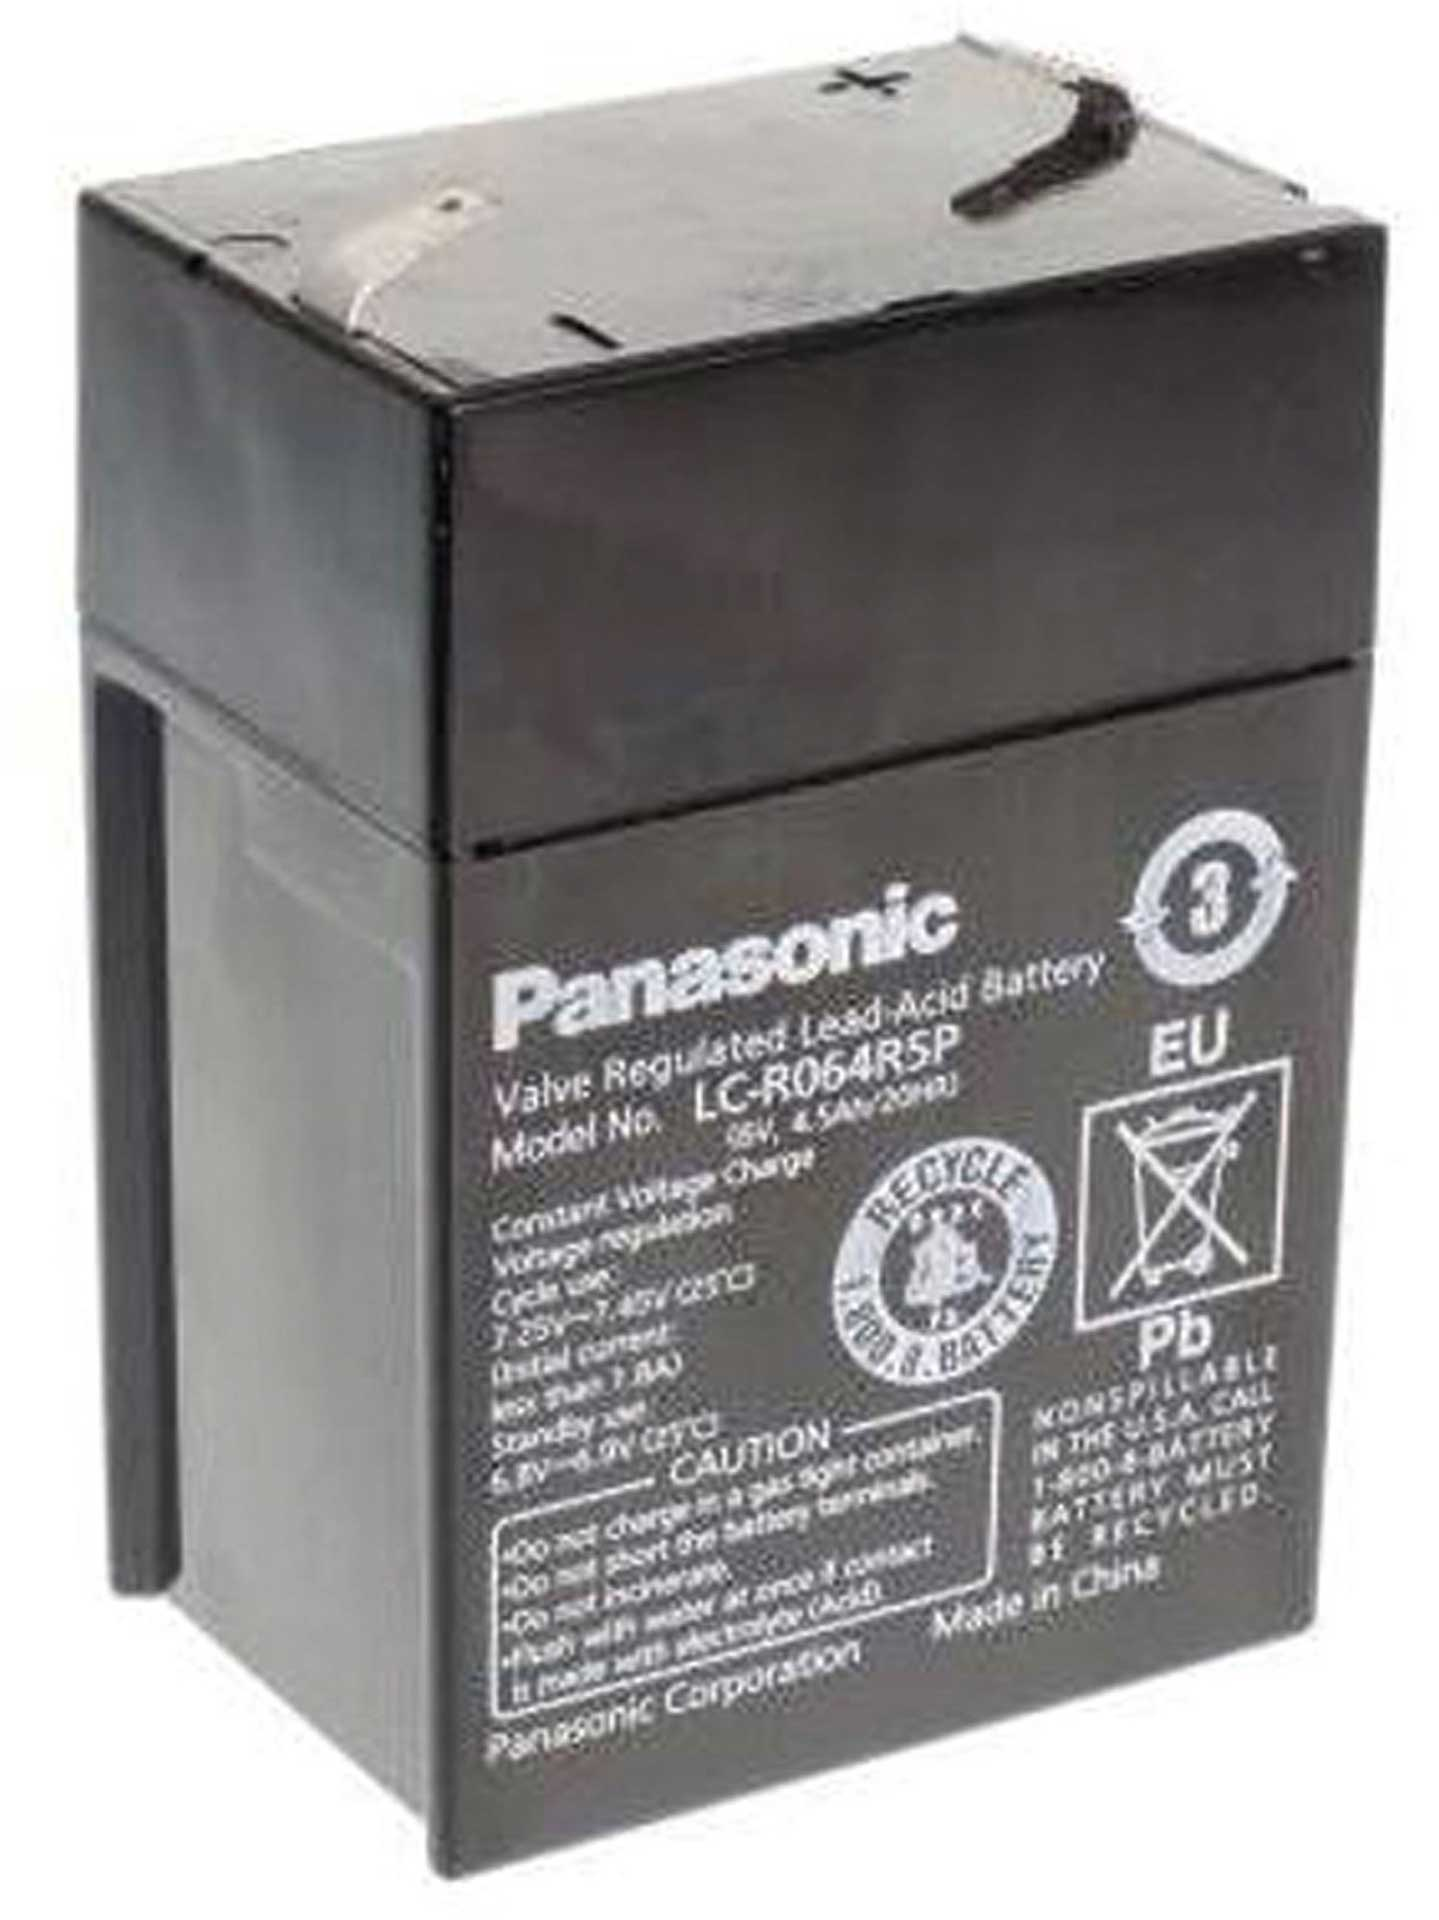 PANASONIC LEAD BATTERY 6V 4,5AH